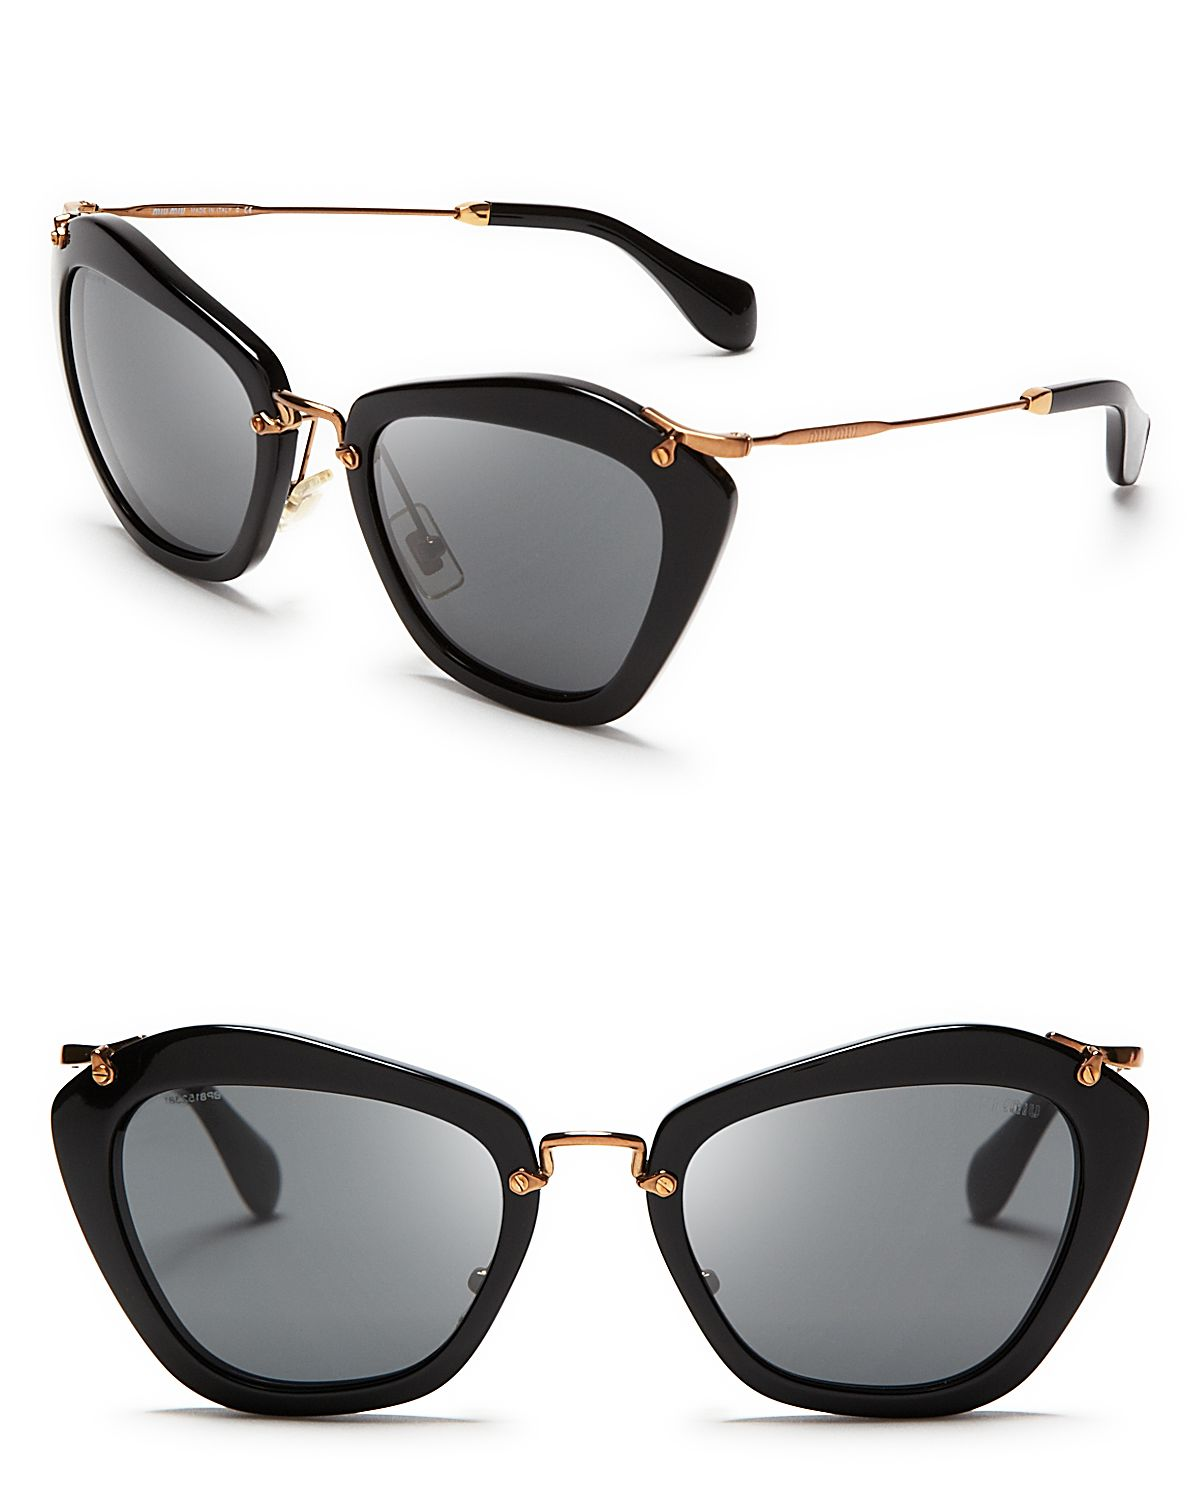 Miu Miu Catwalk Sunglasses | Bloomingdale's